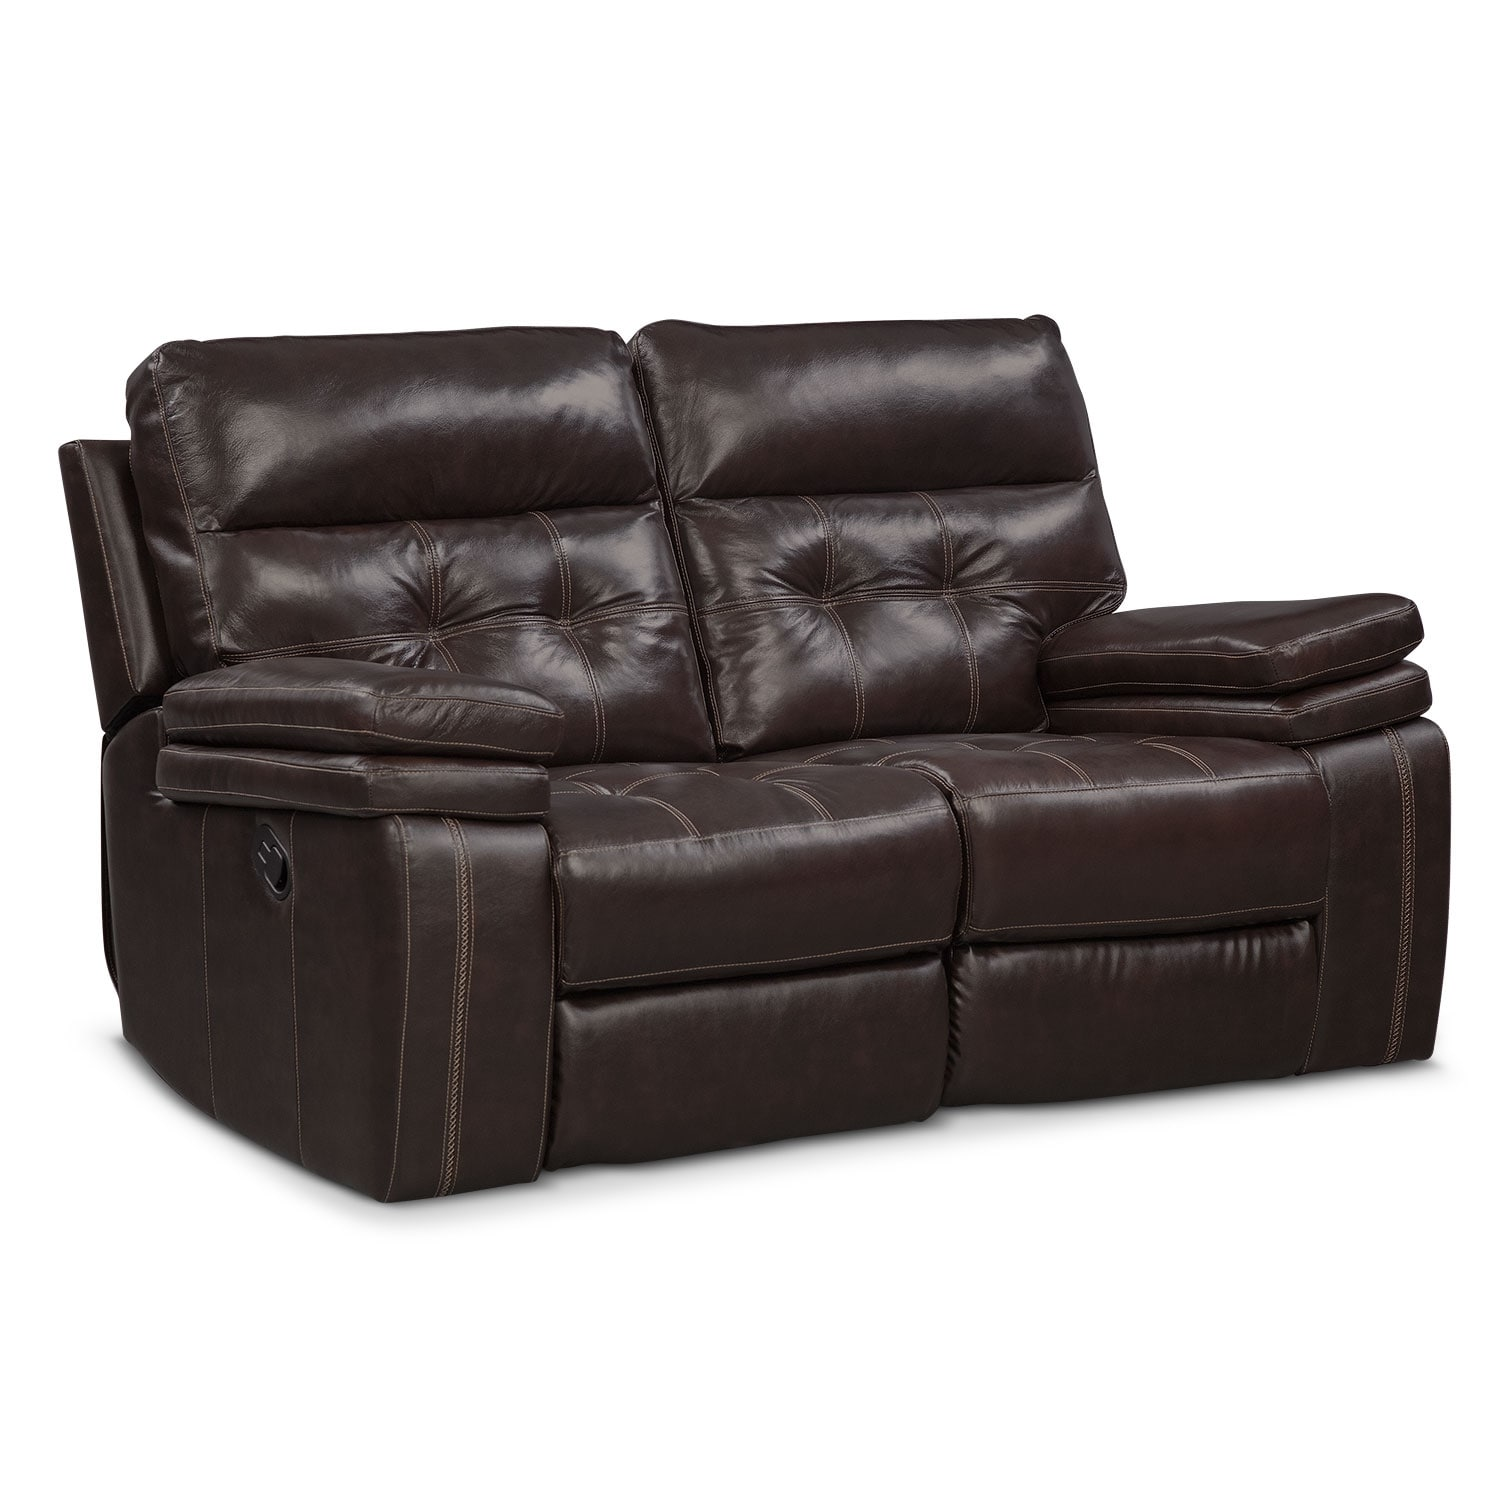 Brisco Manual Reclining Loveseat - Brown